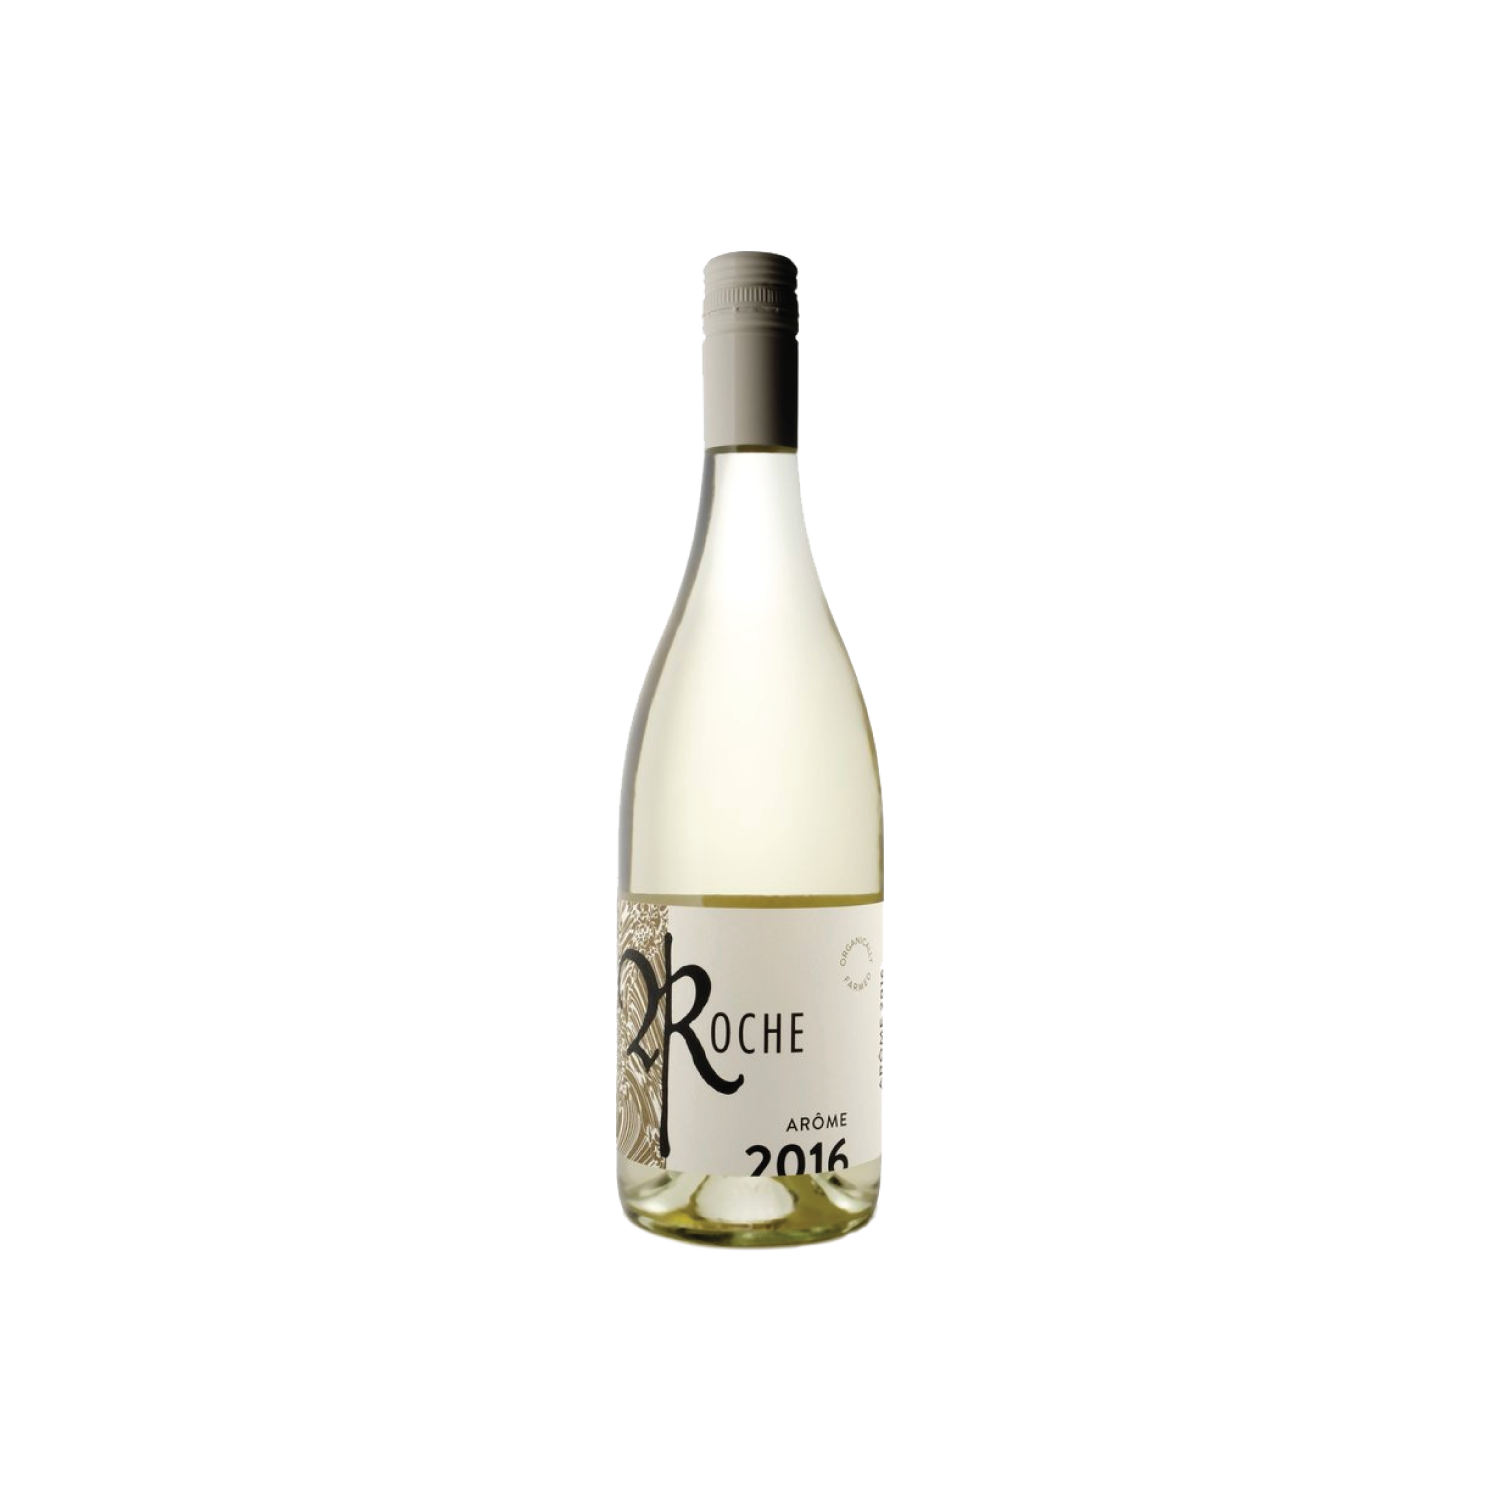 Roche Arôme - This wine is an aromatic explosion of honey suckle, tropical fruits and spring blossoms that finishes surprisingly dry. A perfect accompaniment to lounging on a sunny afternoon.$21.49 (750ml)Okanagan Valley,BC